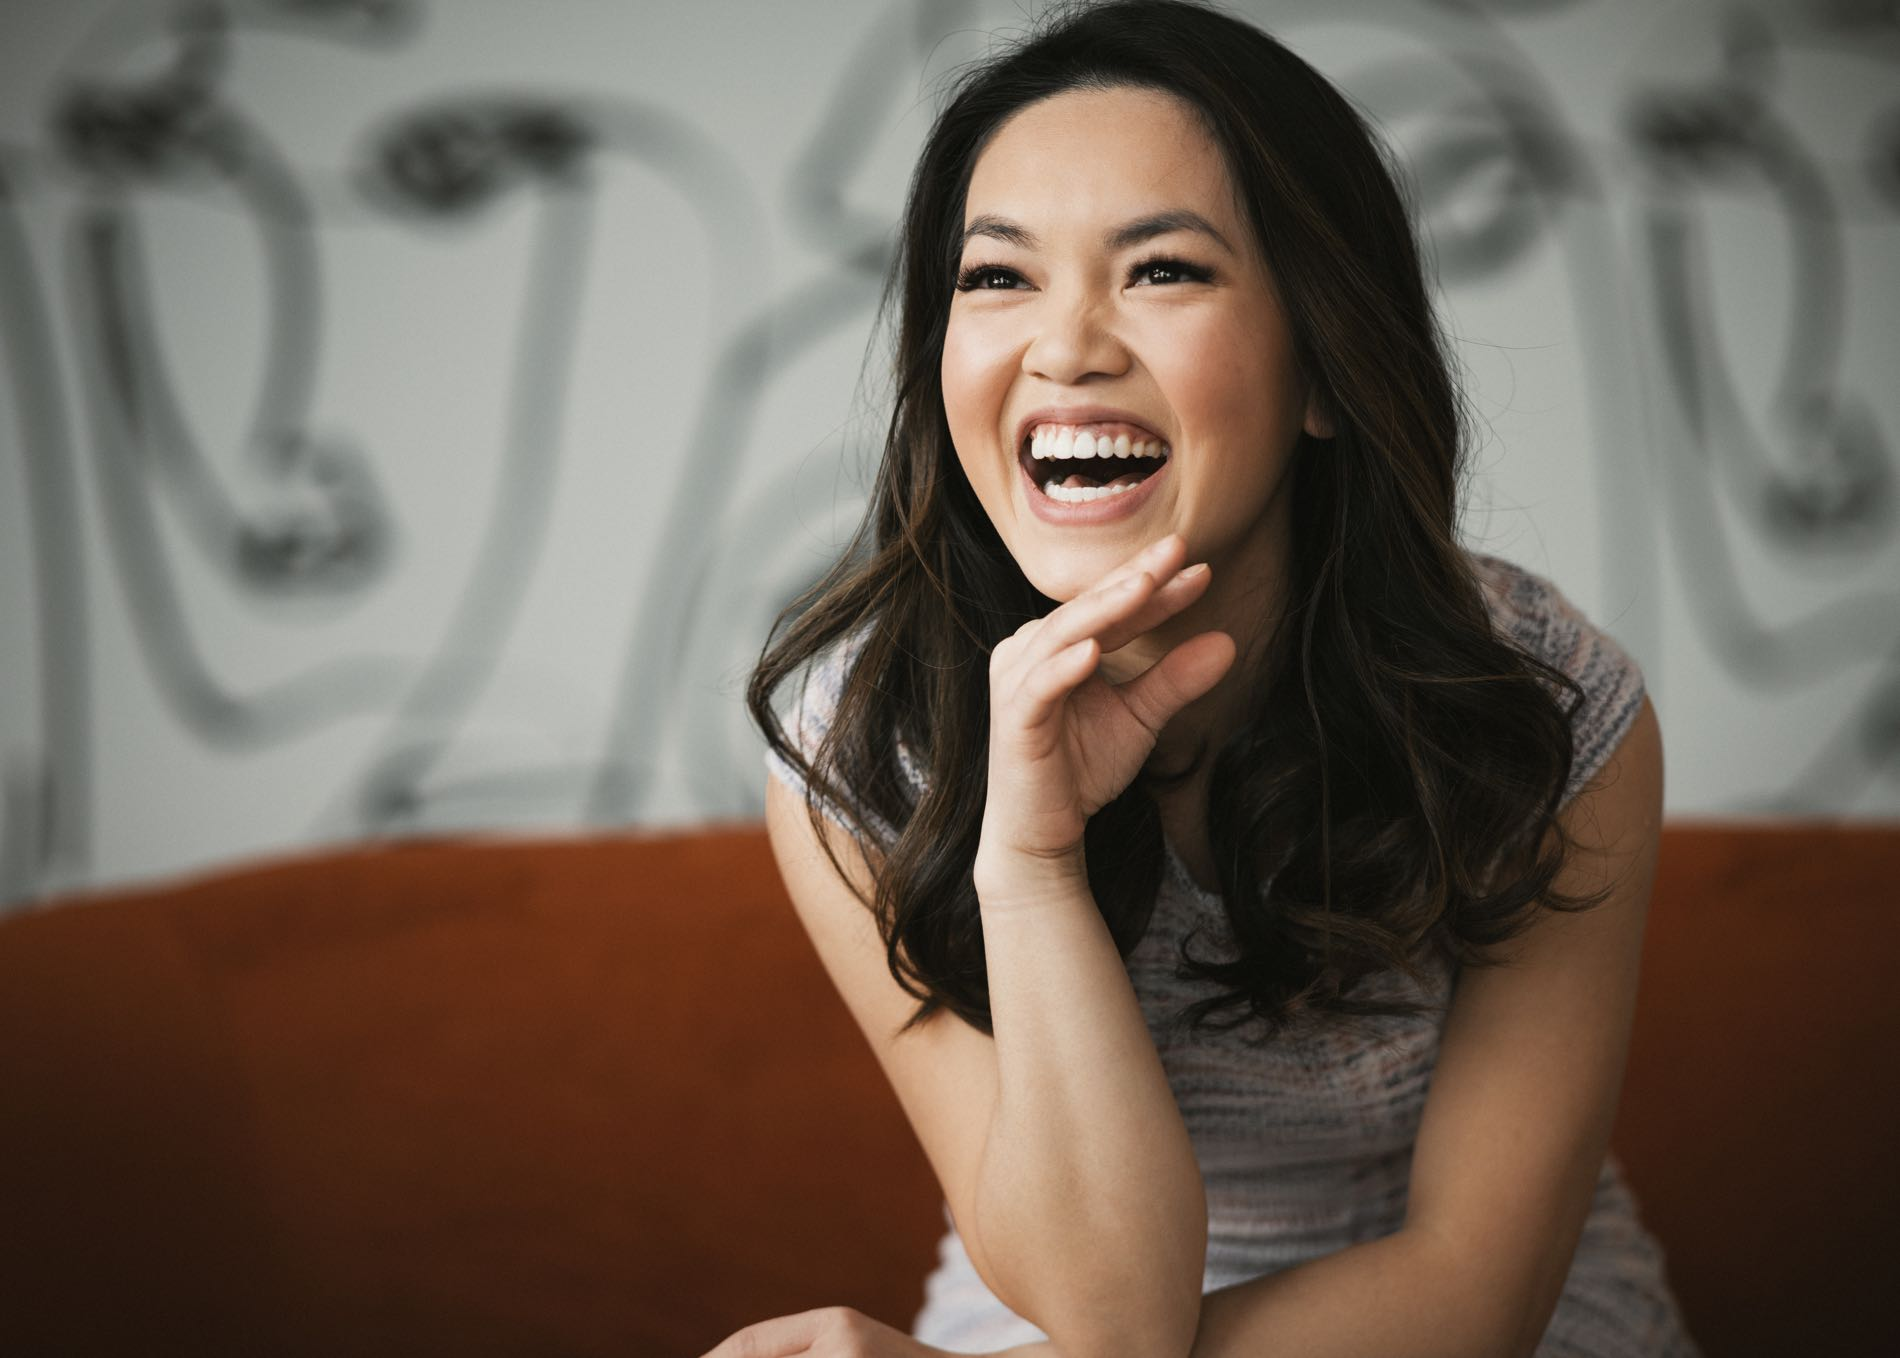 Photo of Dr. Bella laughing